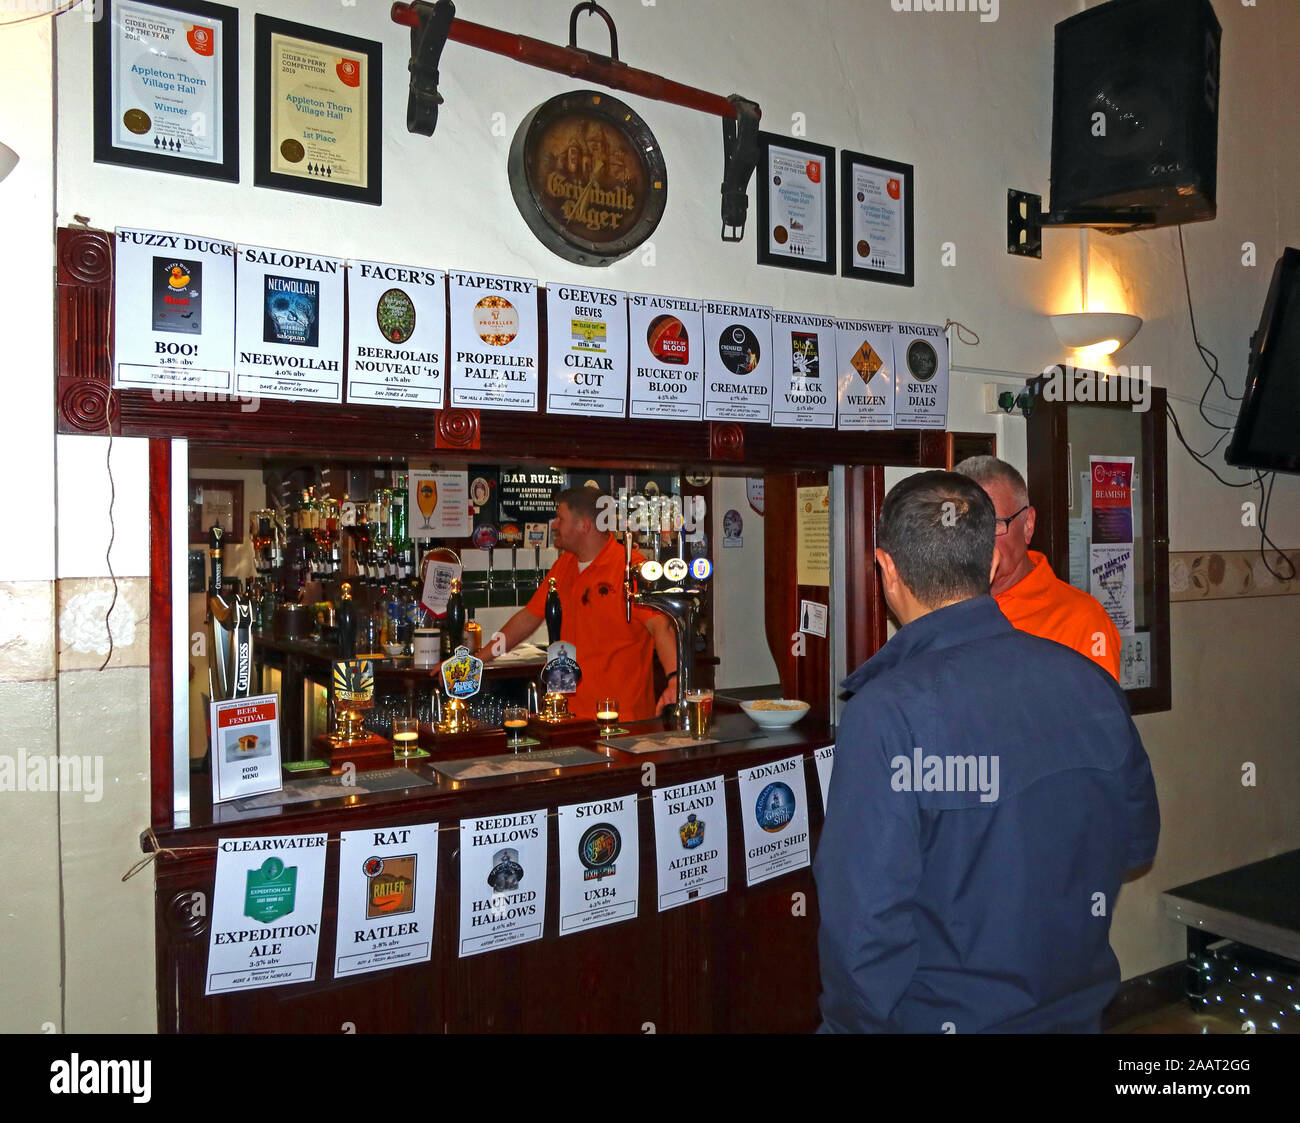 HotpixUk,@HotpixUK,GoTonySmith,UK,England,English,Appleton,CAMRA National Club of the Year 2019,National Club of the Year,2019,Warrington,Cheshire,WA4 4RT,local beer festival,village beer festival,awarded,awards,real ale,bitters,IPA,British ales,brewing,range of ales,Great British Beer Festival,campaign for real ale